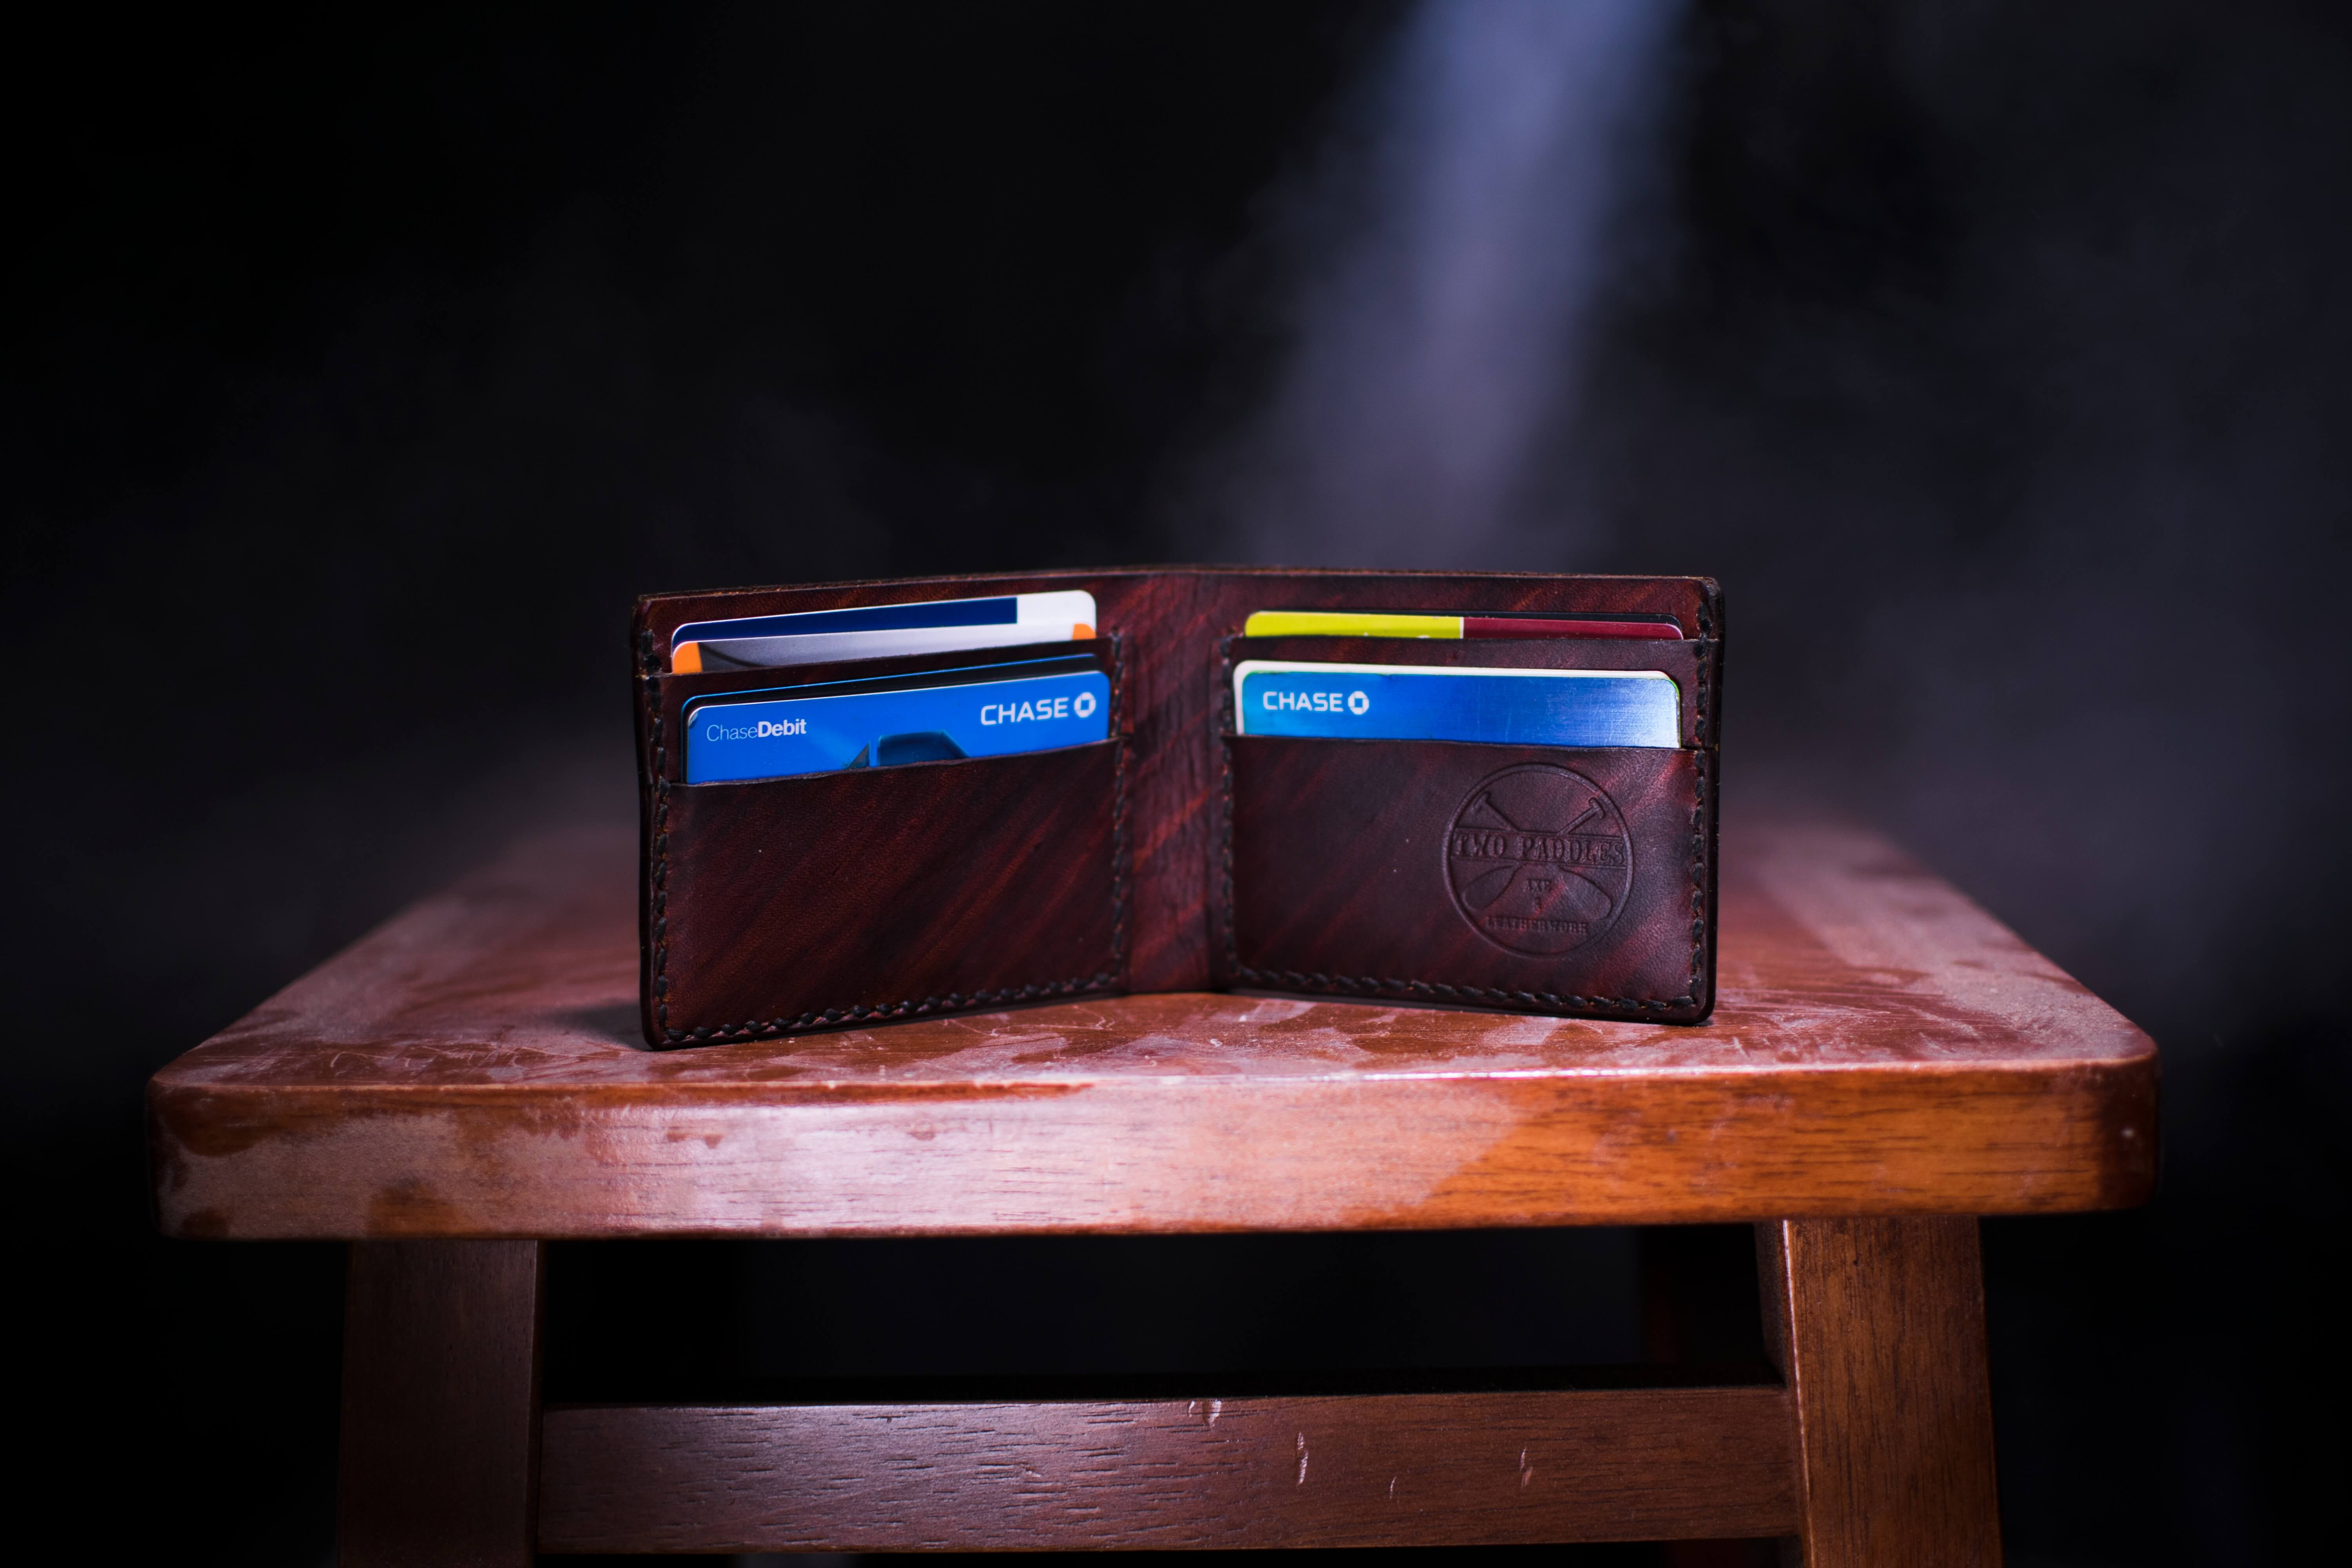 chase-credit-card-moneybyramey